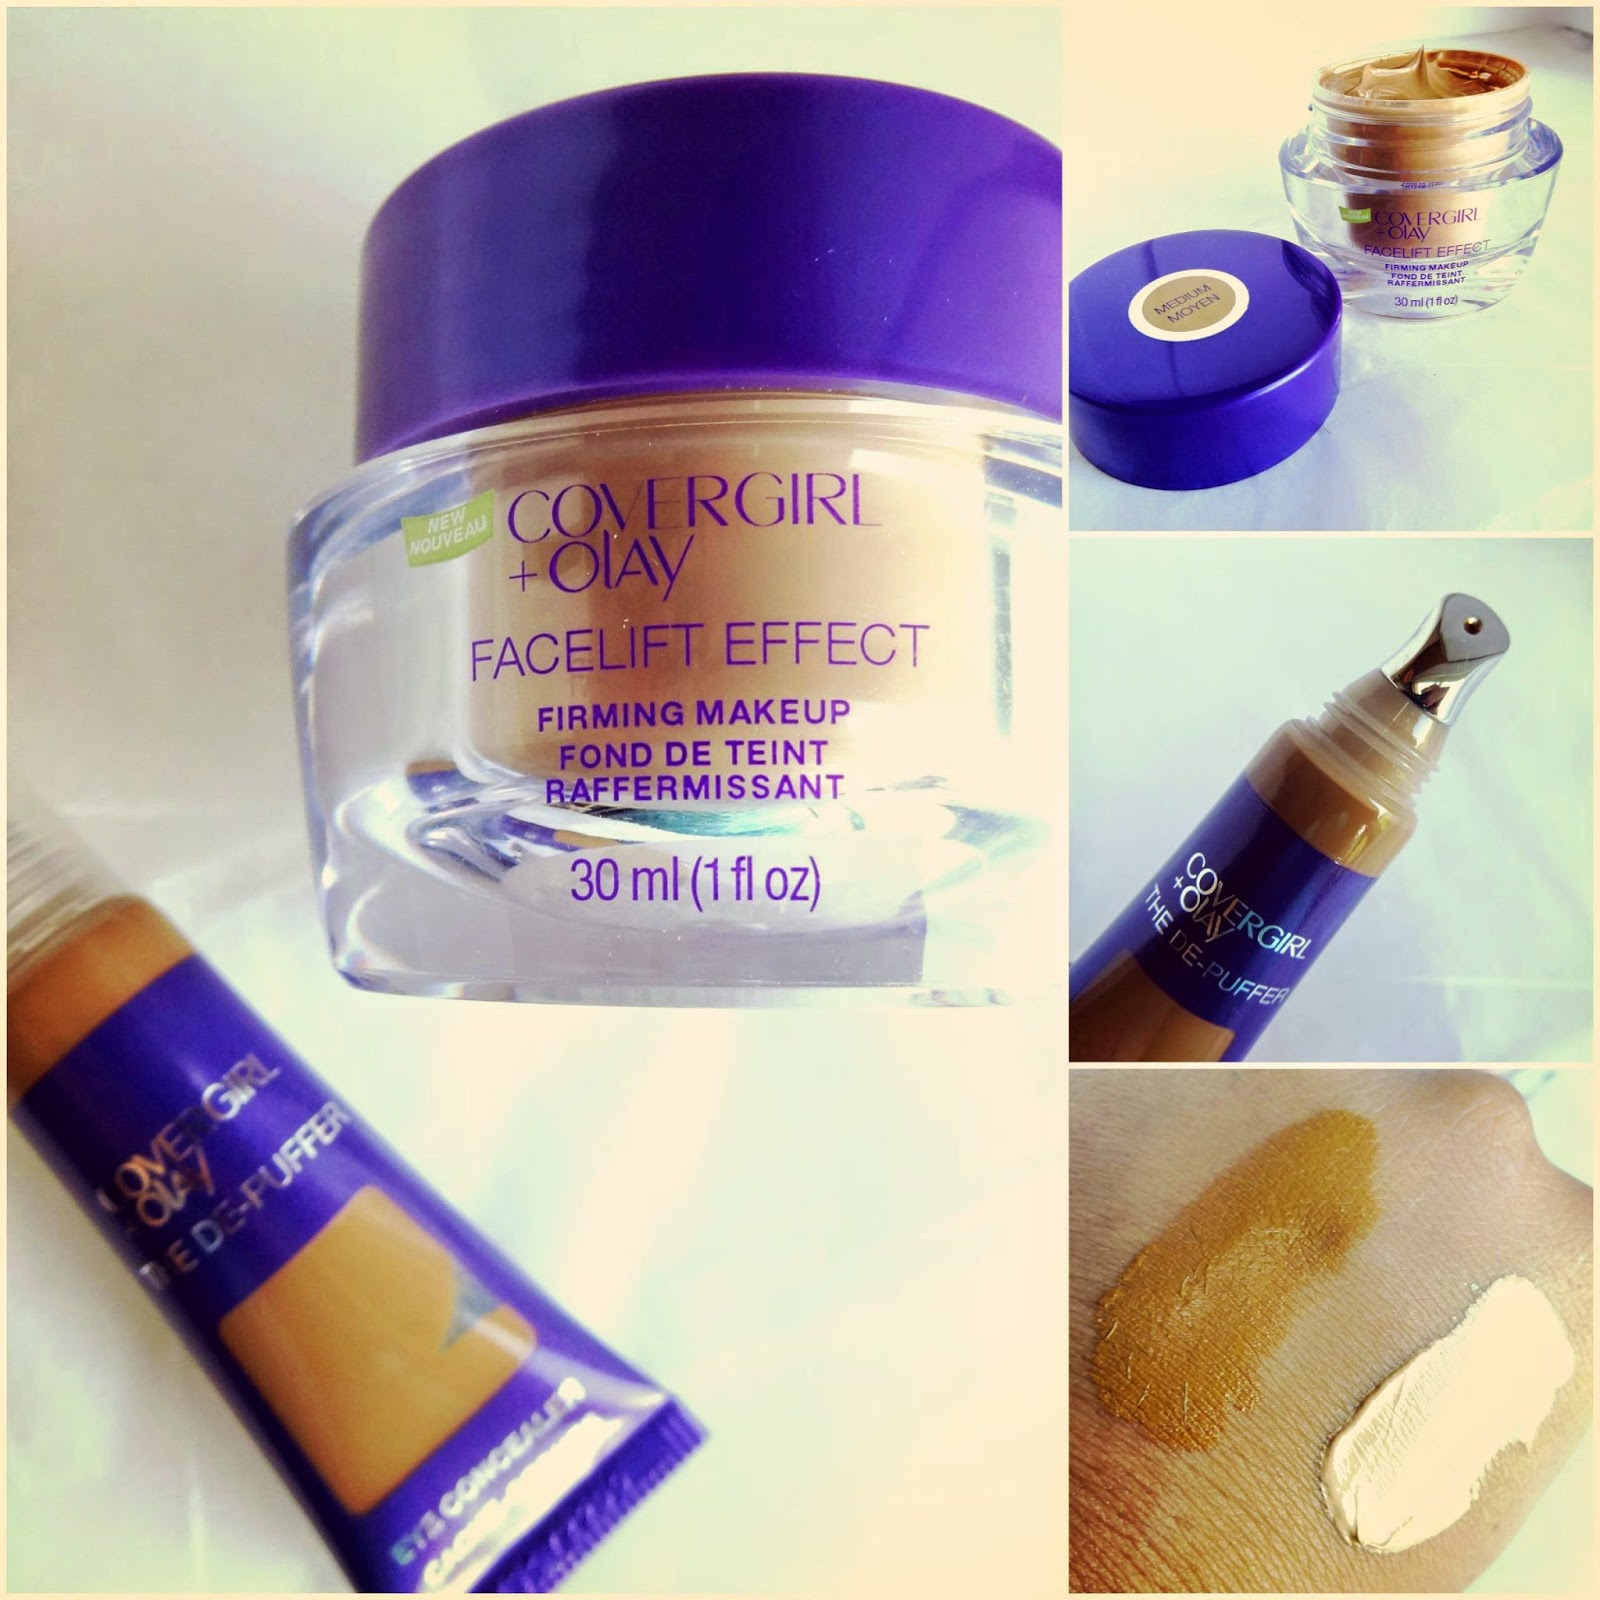 Covergirl+Olay Facelift Firming Makeup & Covergirl +Olay The De- Puffer